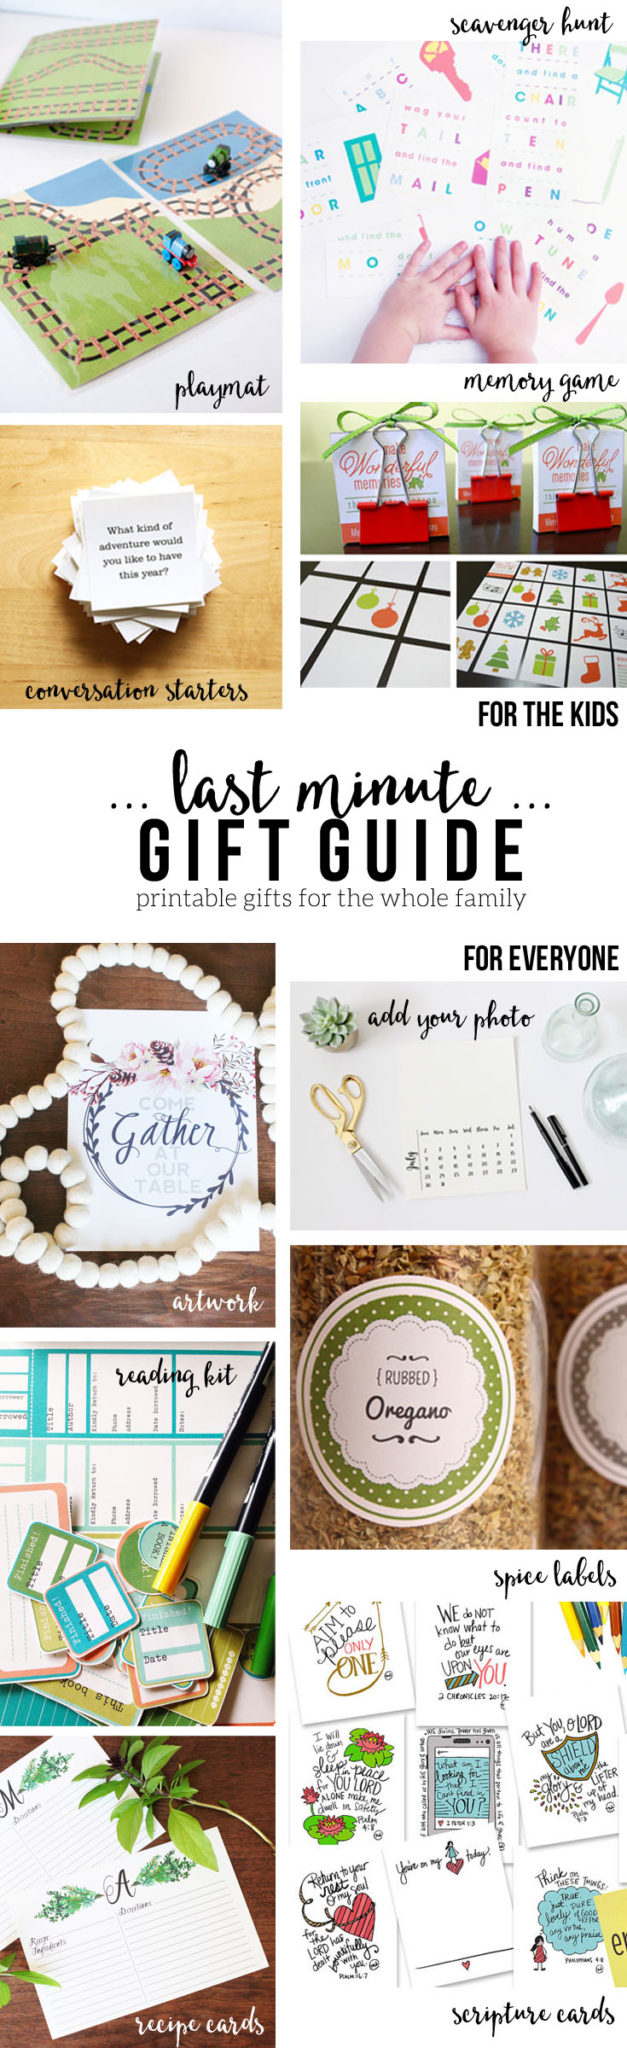 A Last Minute Gift Guide with Creative Ideas that won't seem last-minute! Everything is printable from games, to recipe cards, to calendars and more! Gifts for kids and adults -- all you will need is a printer and cardstock. by @CraftivityD